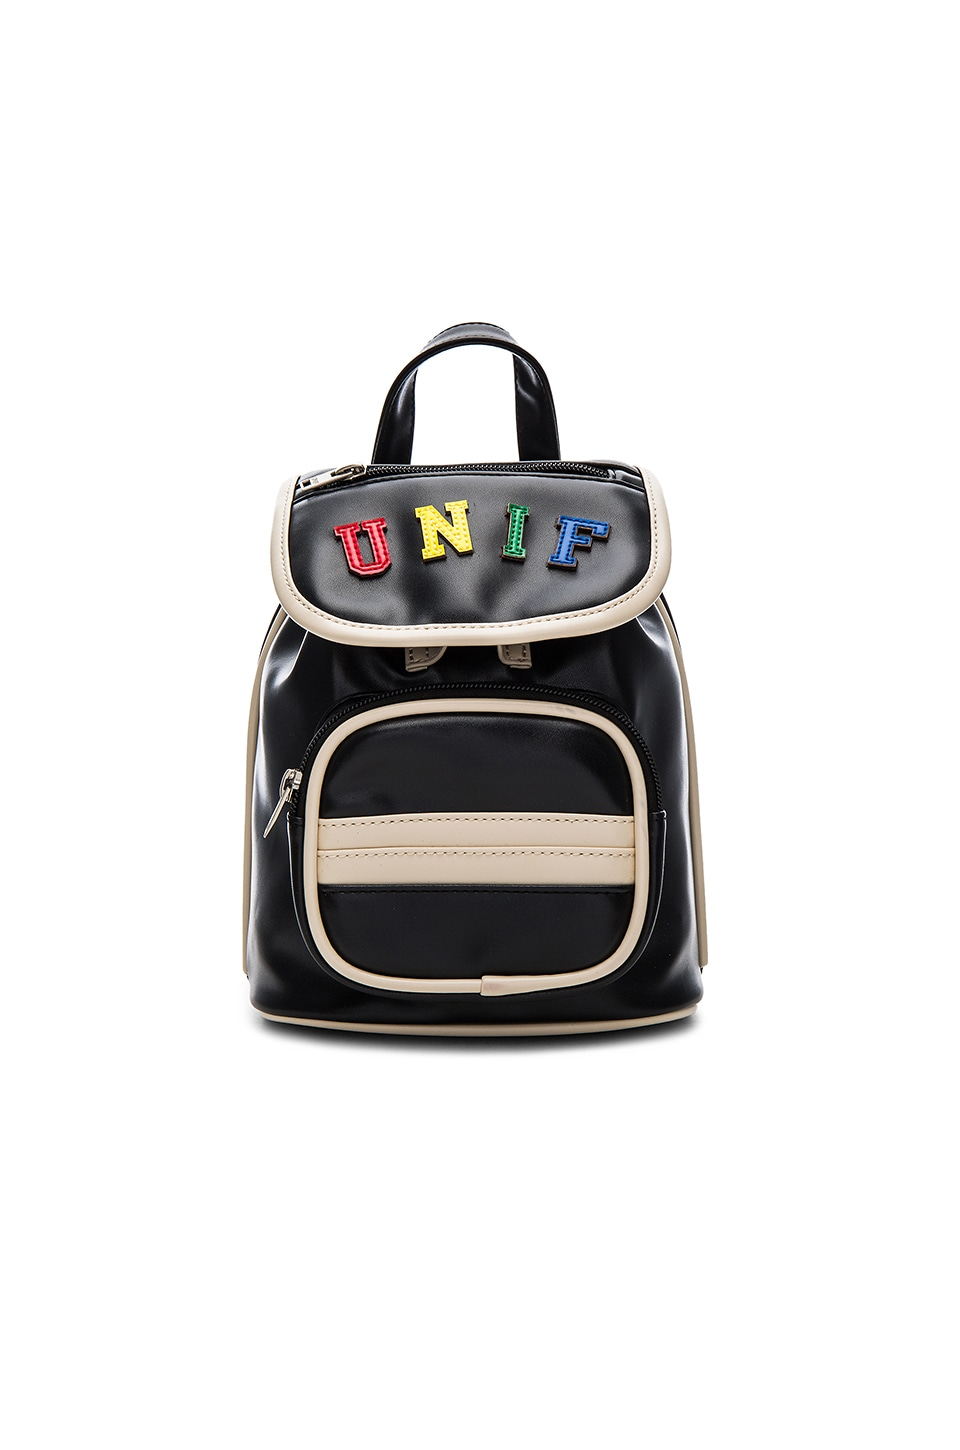 UNIF Crayola Backpack in Black & Multi